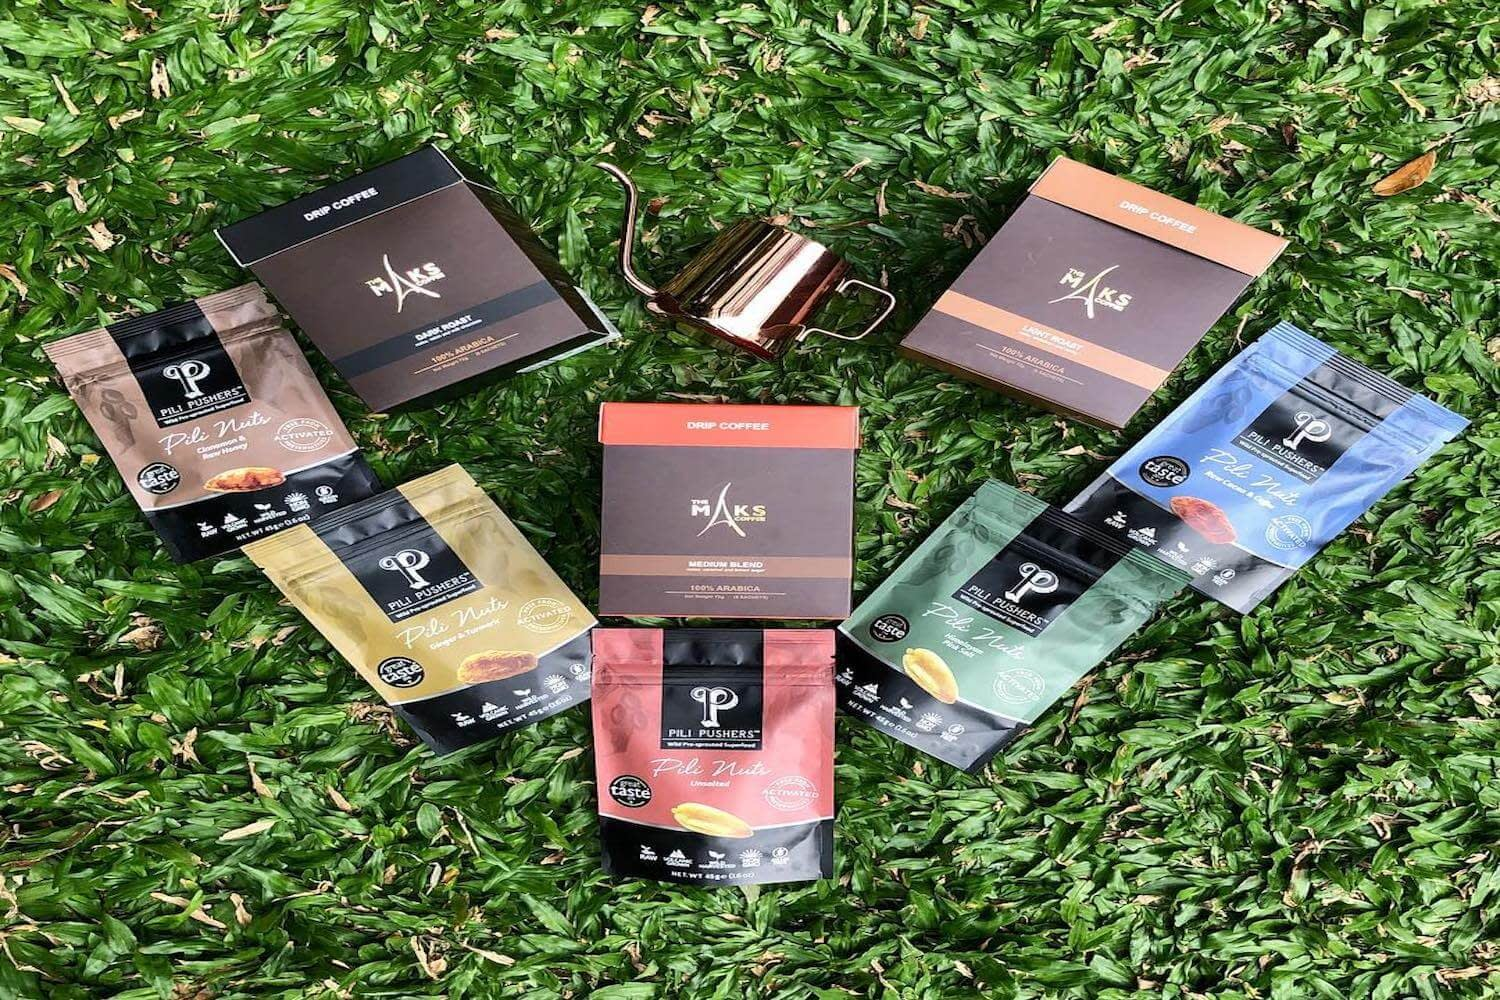 Pili nuts gifts